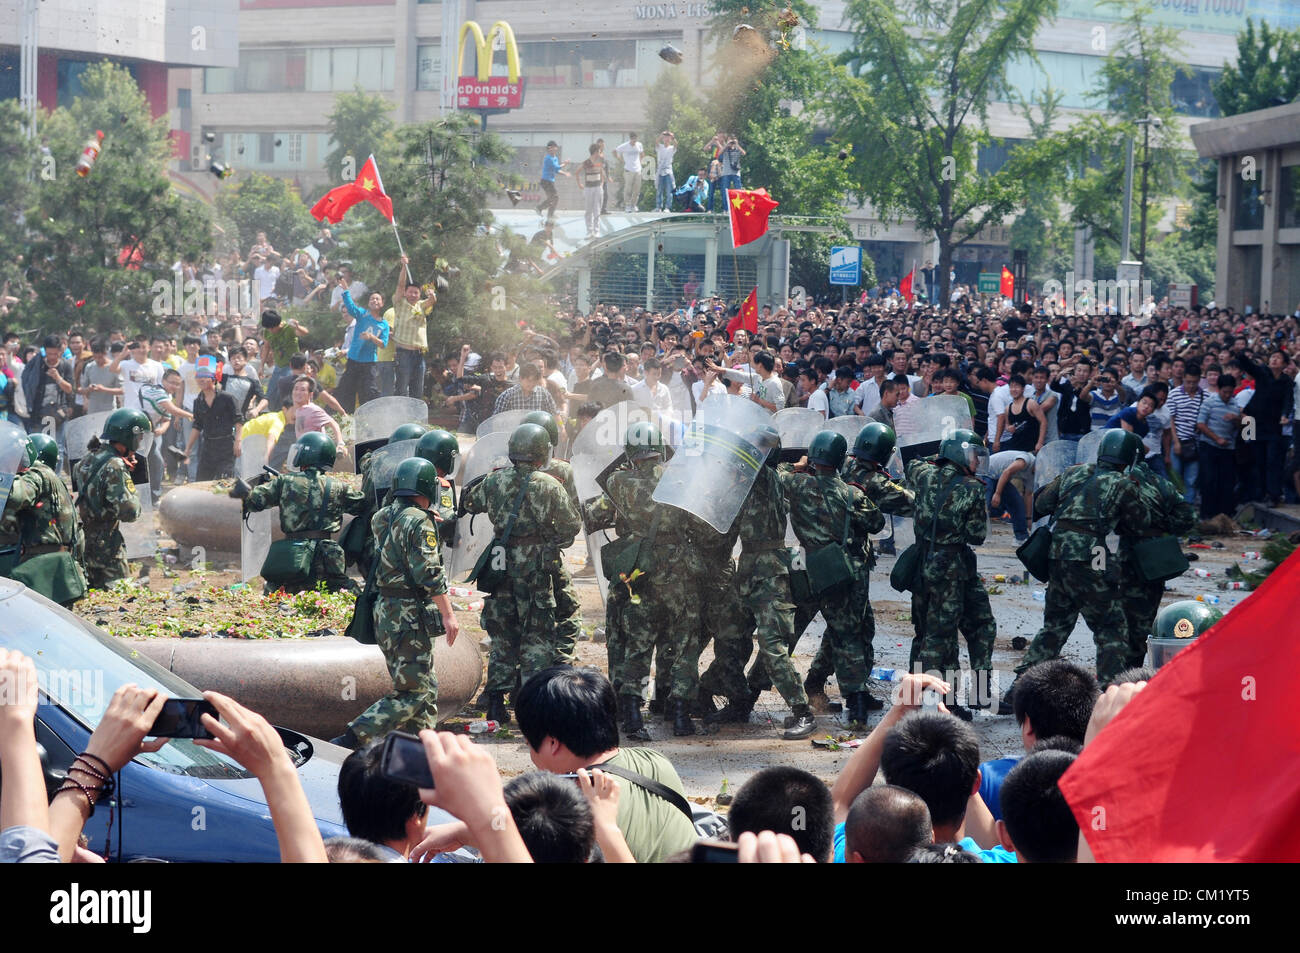 Xian, China. Saturday 15th September, 2012. Anti-Japanese protesters have a conflict with armed police at a demonstration Stock Photo